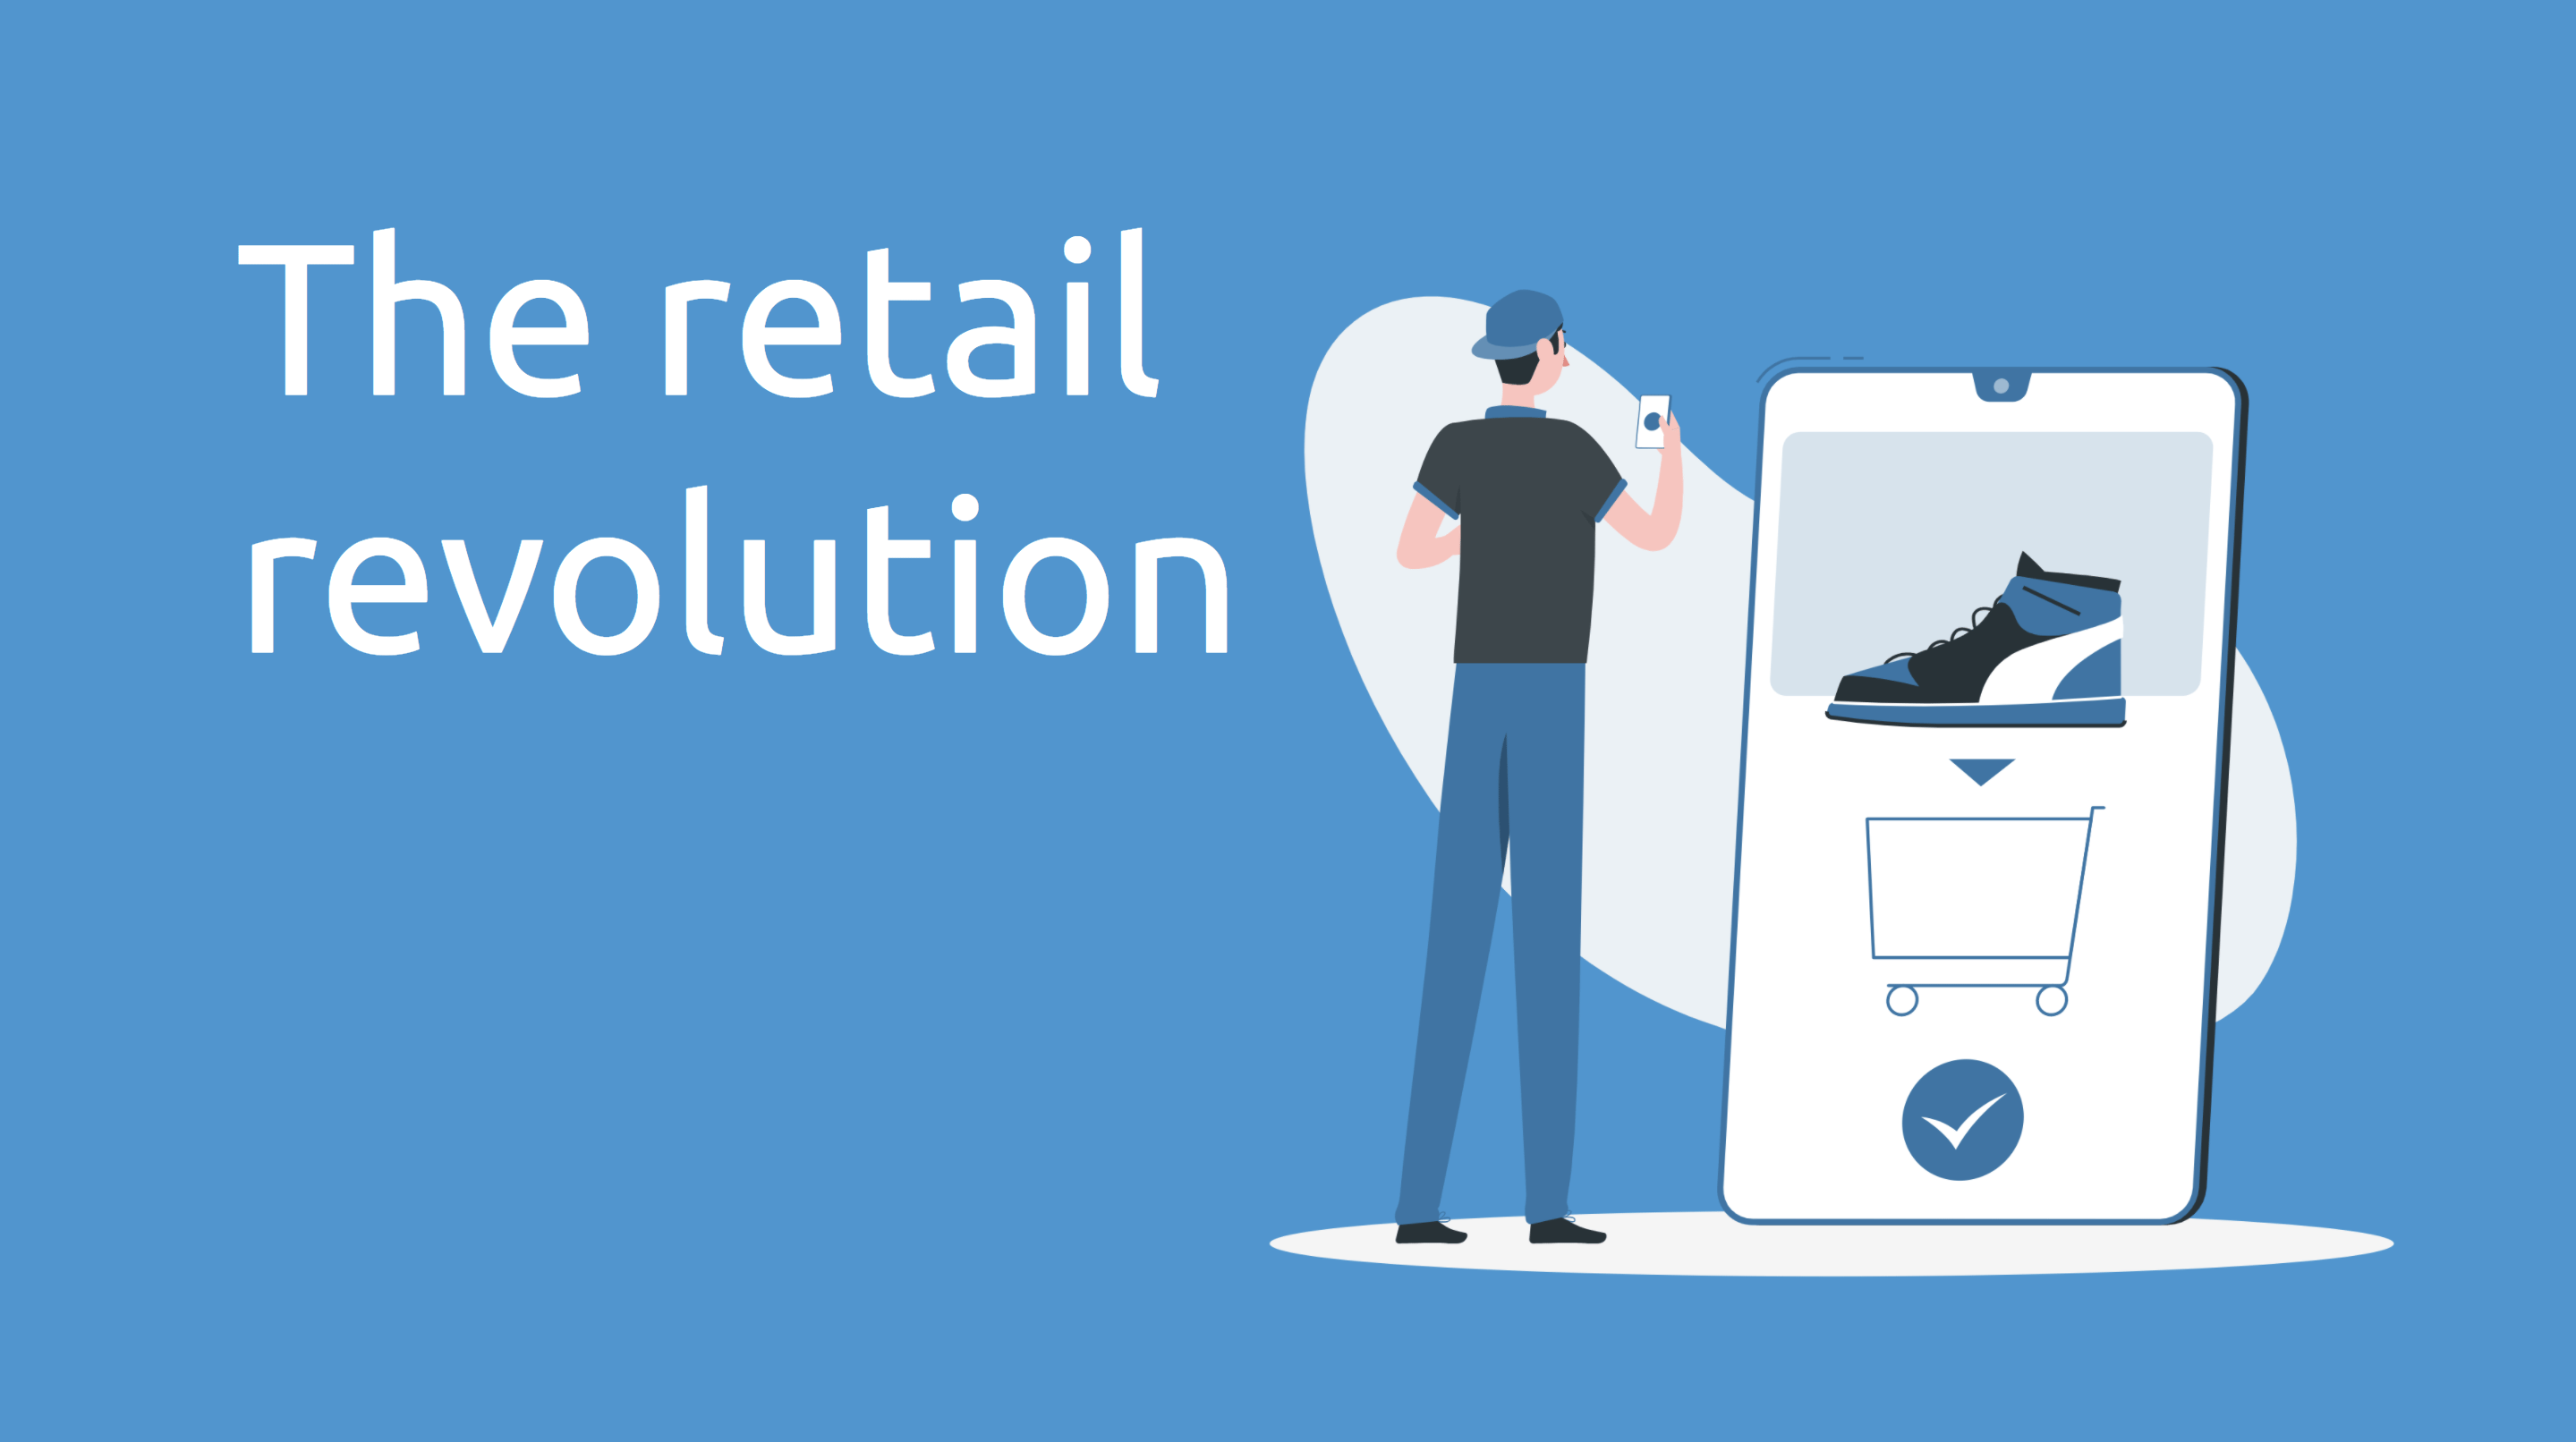 infographic retail revolution - man using e-commerce app to buy shoes